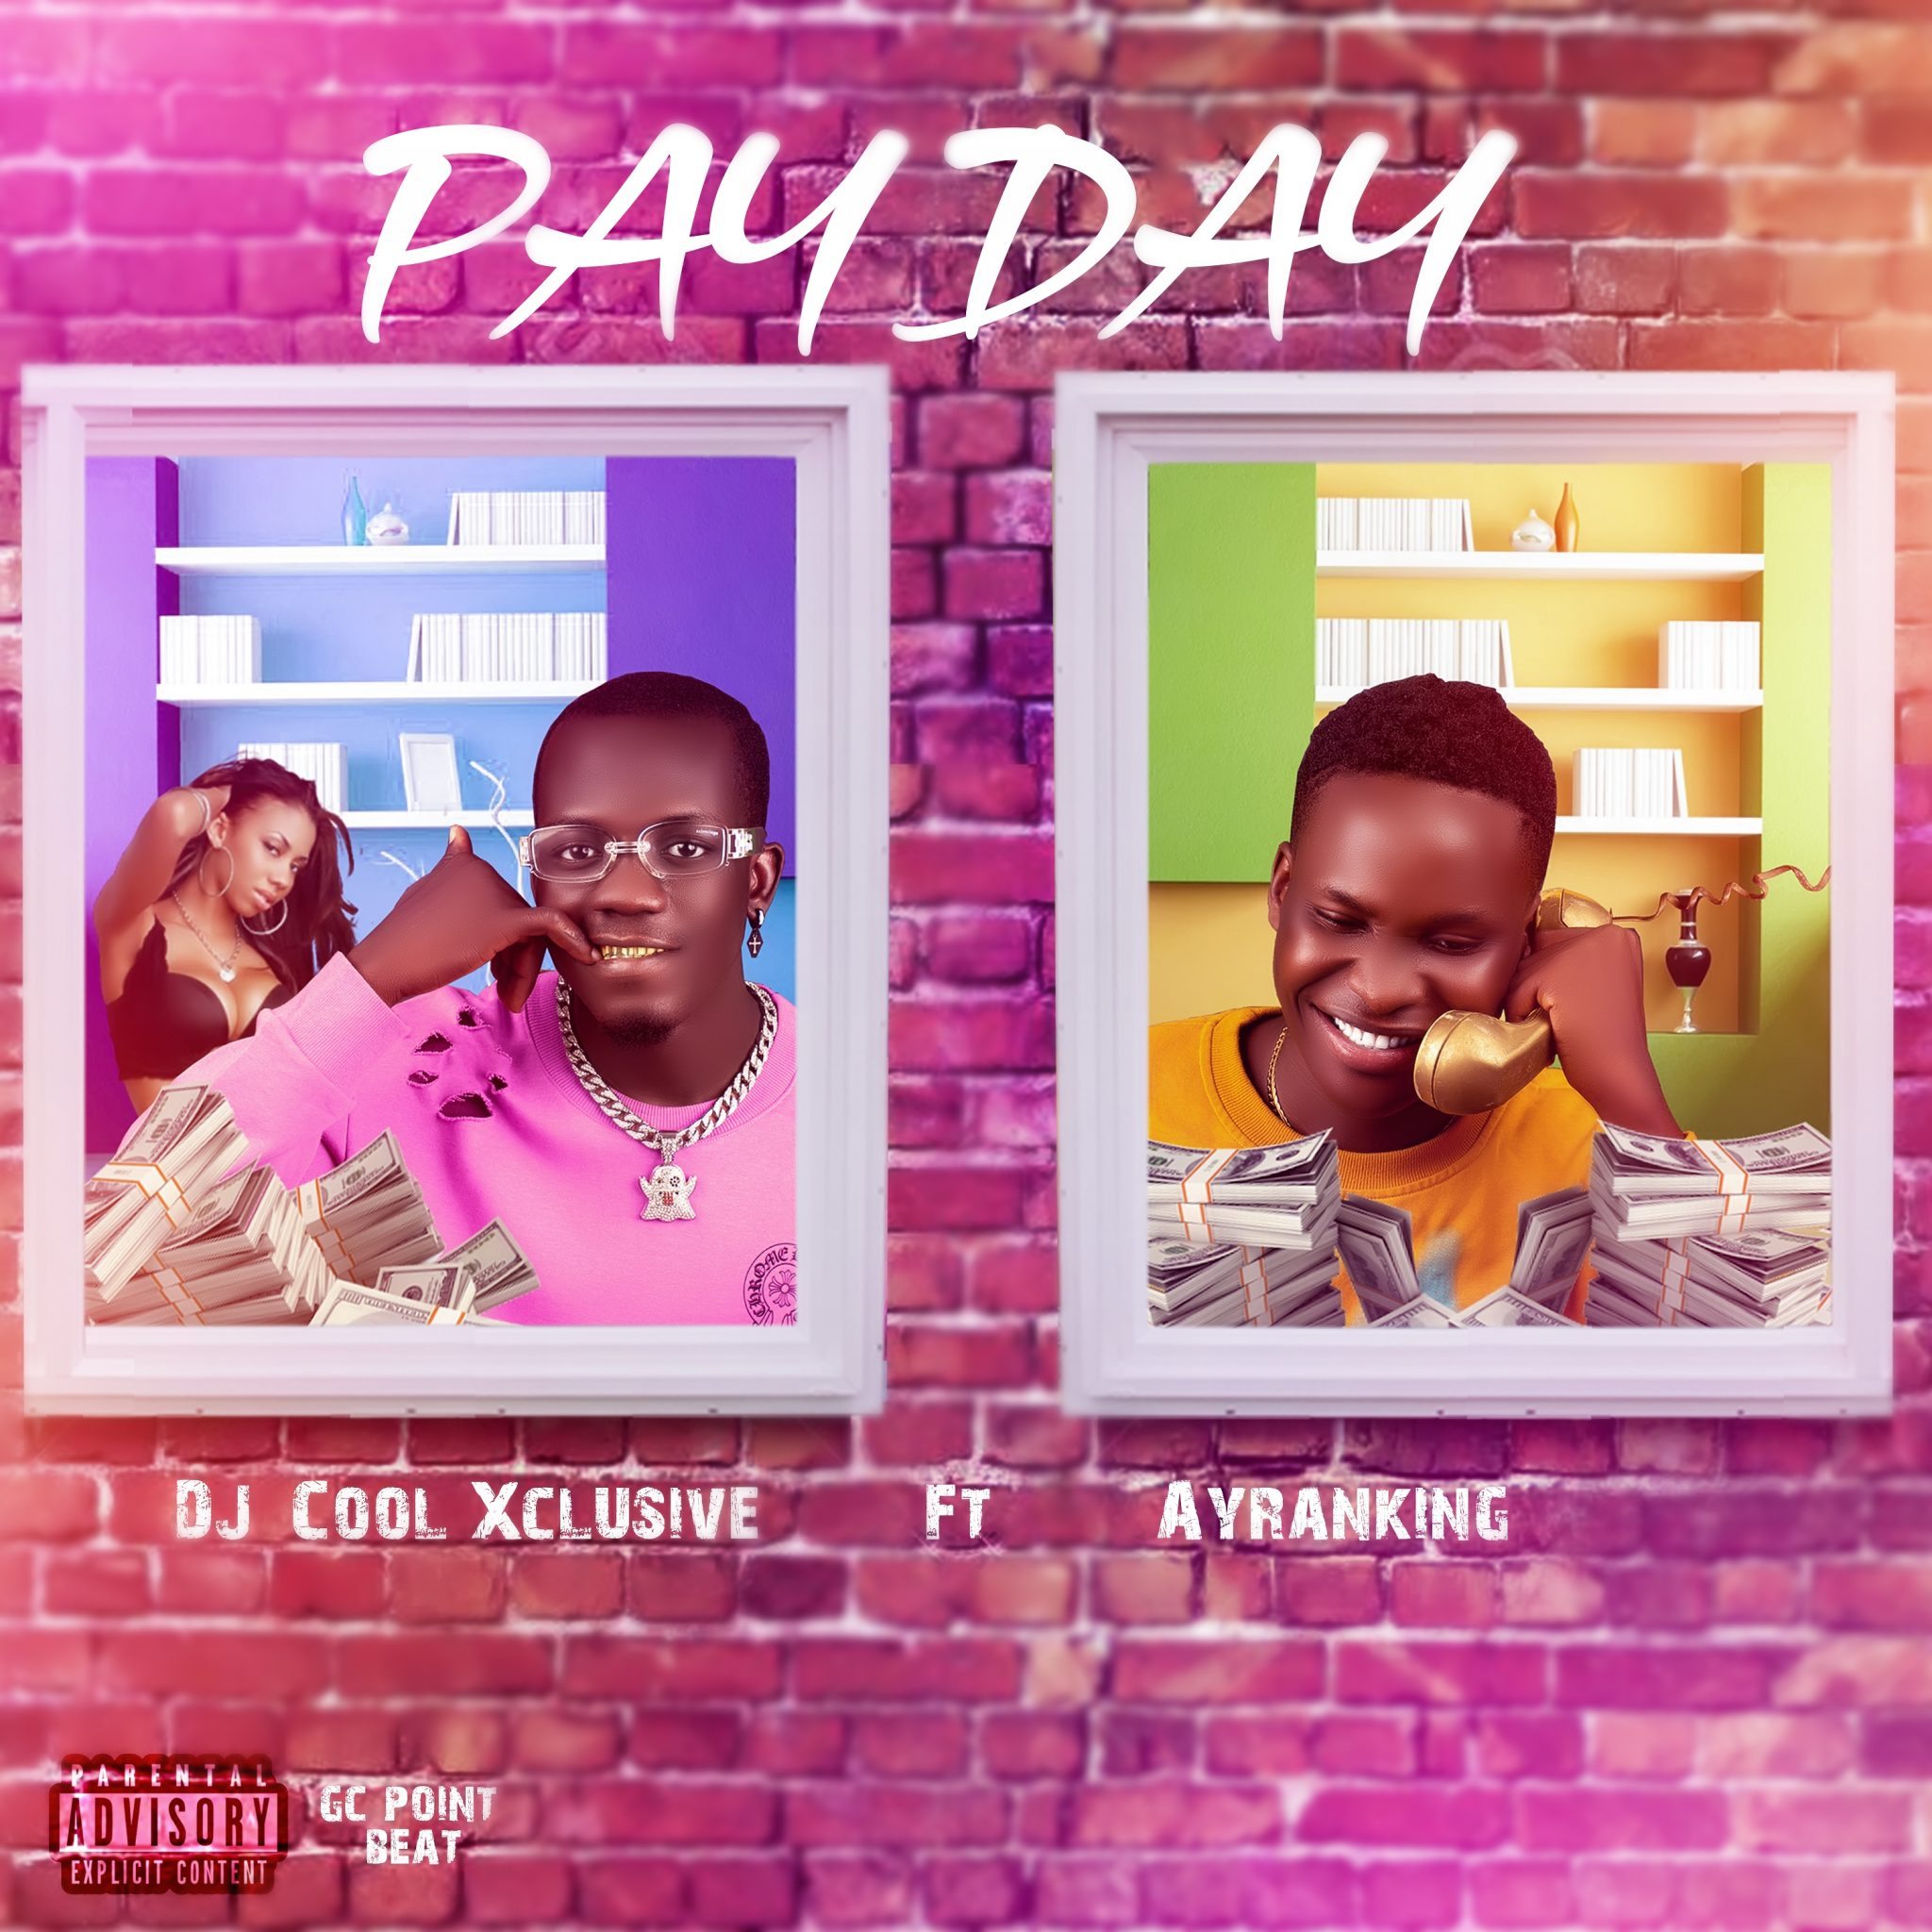 DJ Cool Exclusive Ft. AY Ranking - Pay Day